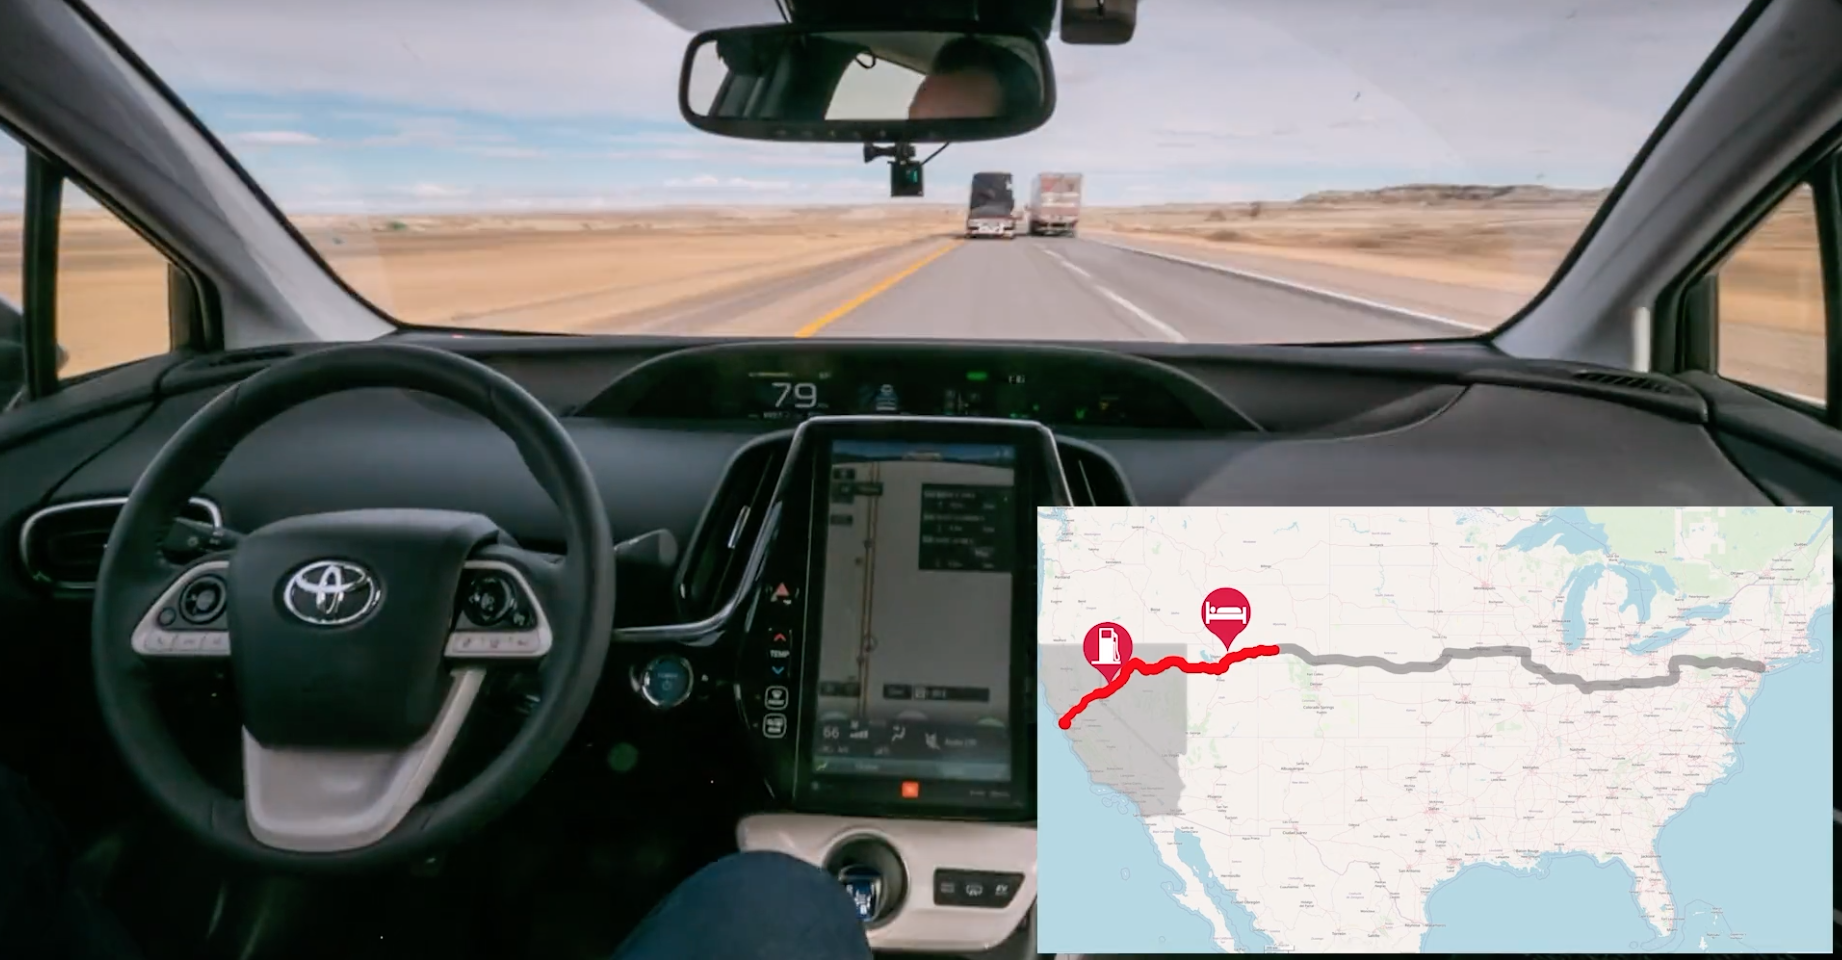 inverse.com - Mike Brown - Video Shows the Autonomous Car A.I. That's Taking This Guy Coast-to-Coast